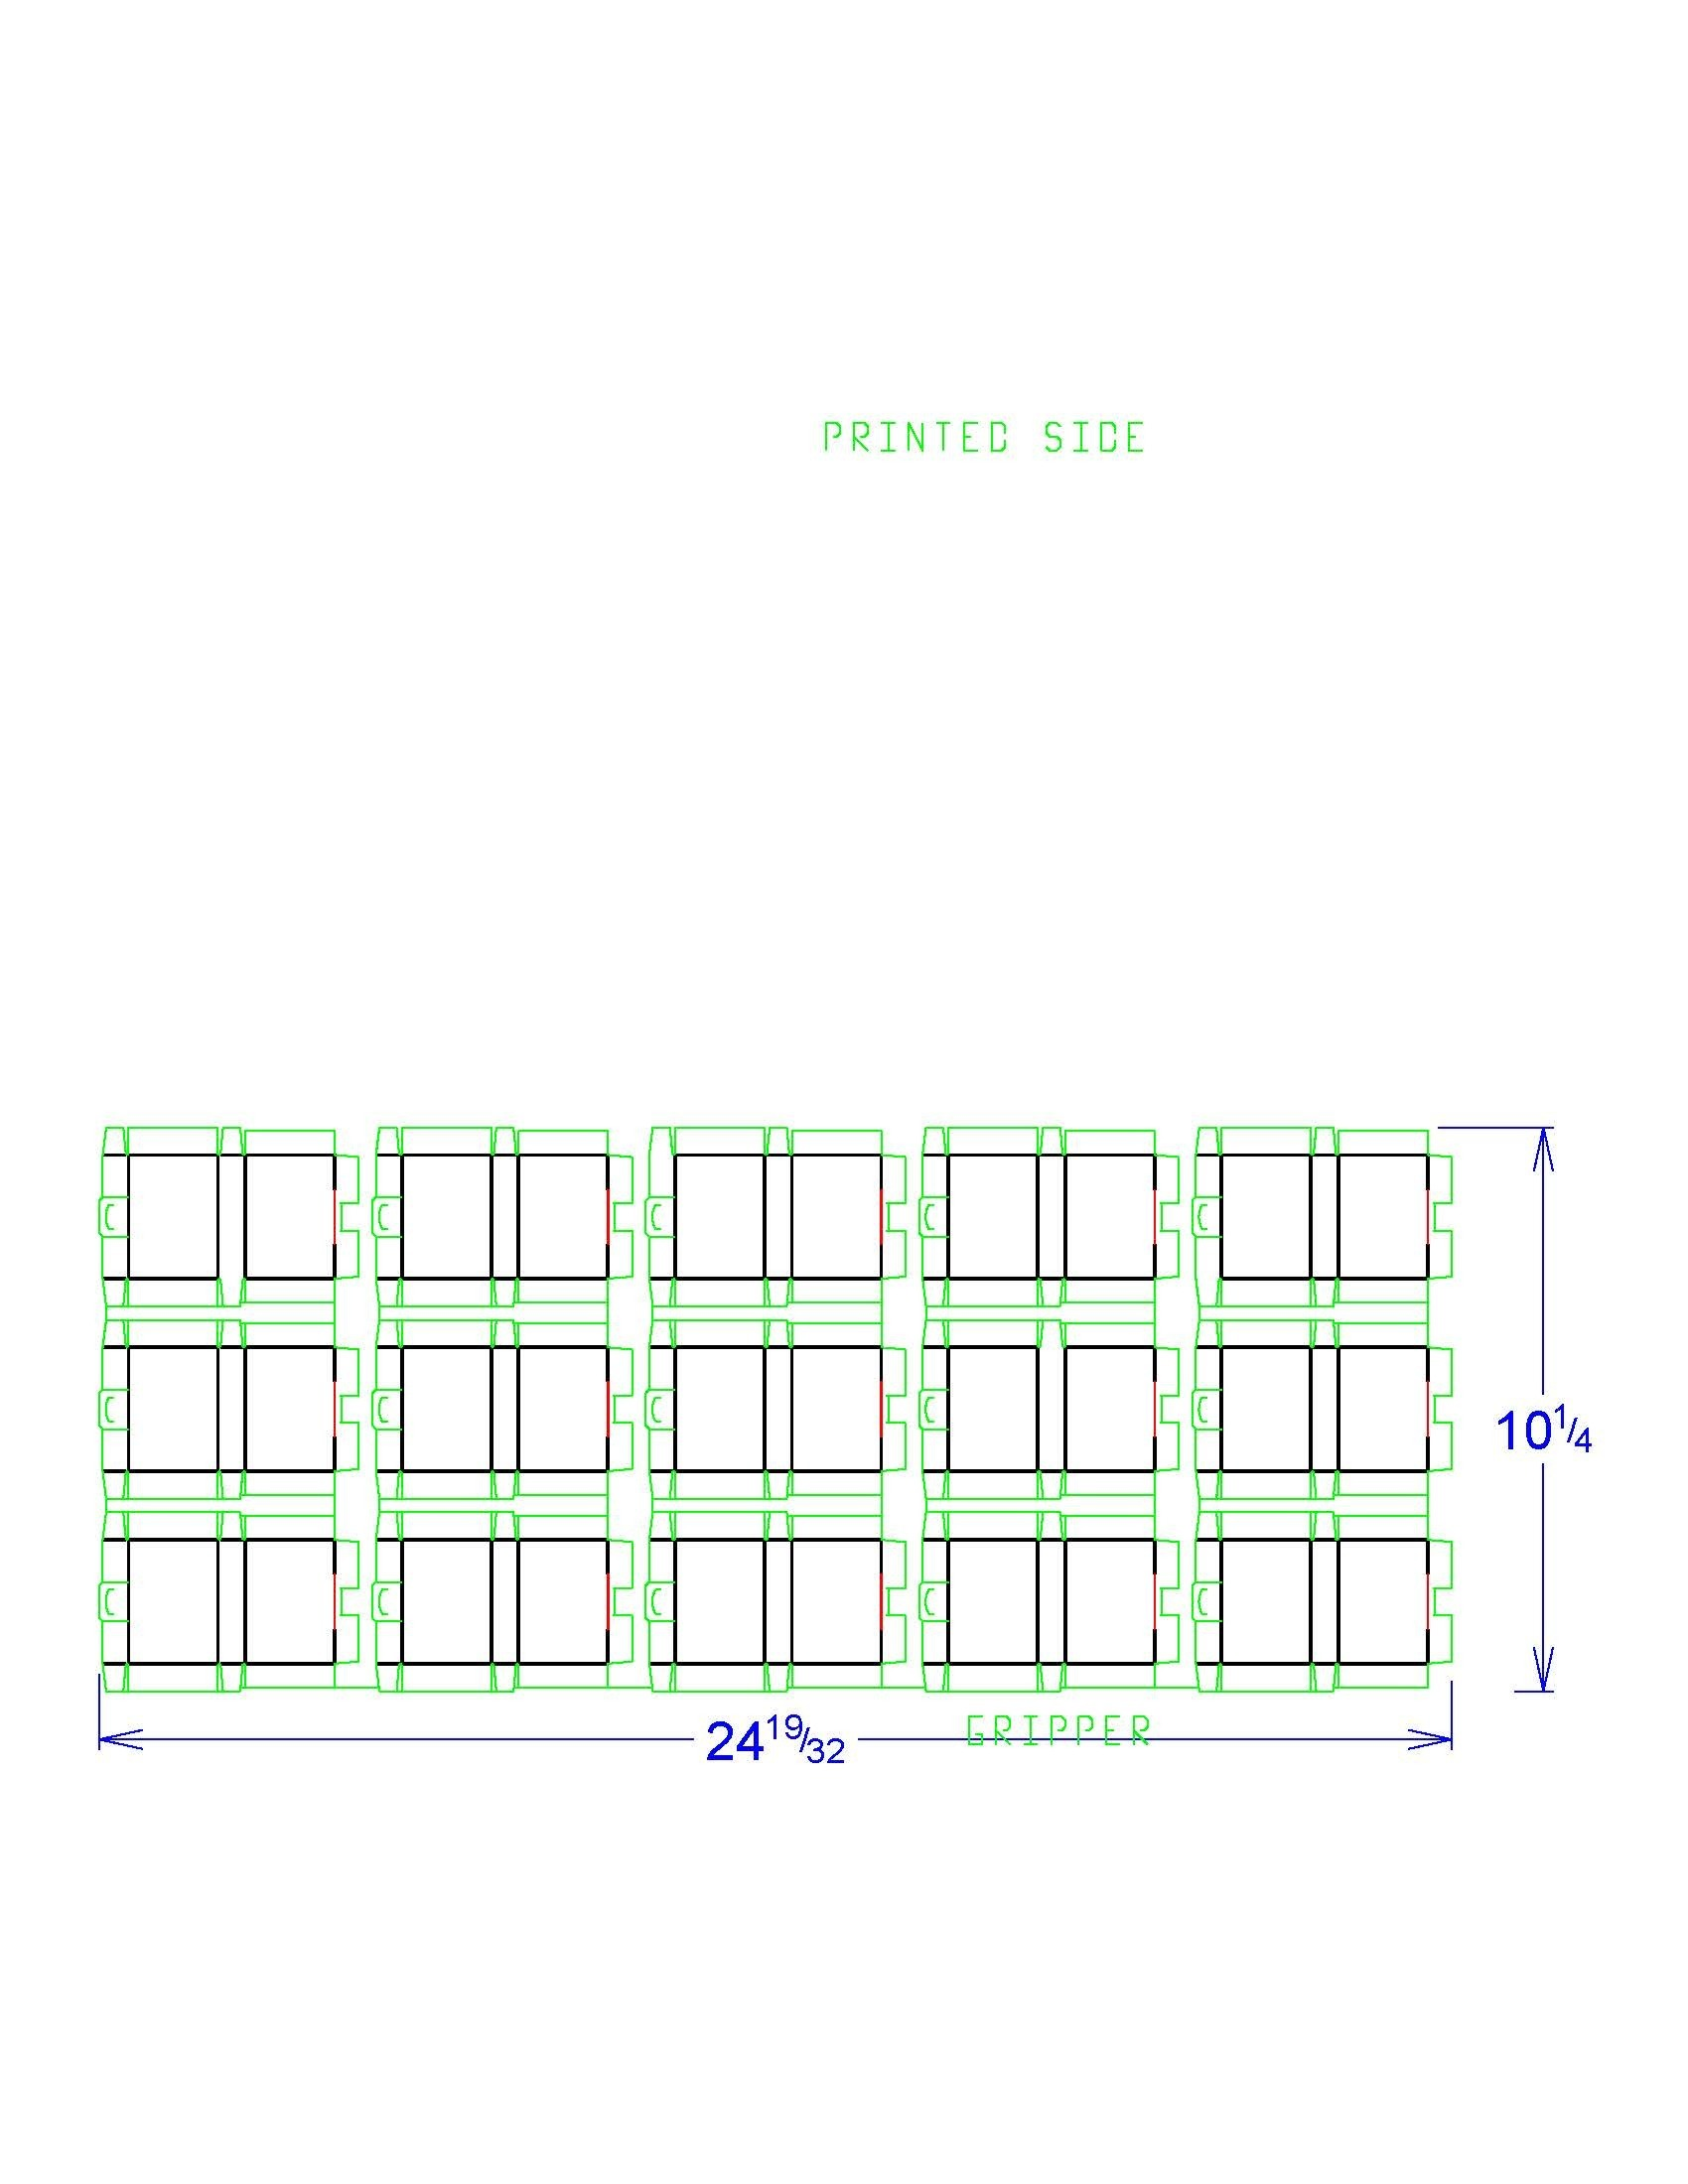 Complete Finishings  and  Folding Cartons, LLC image 6